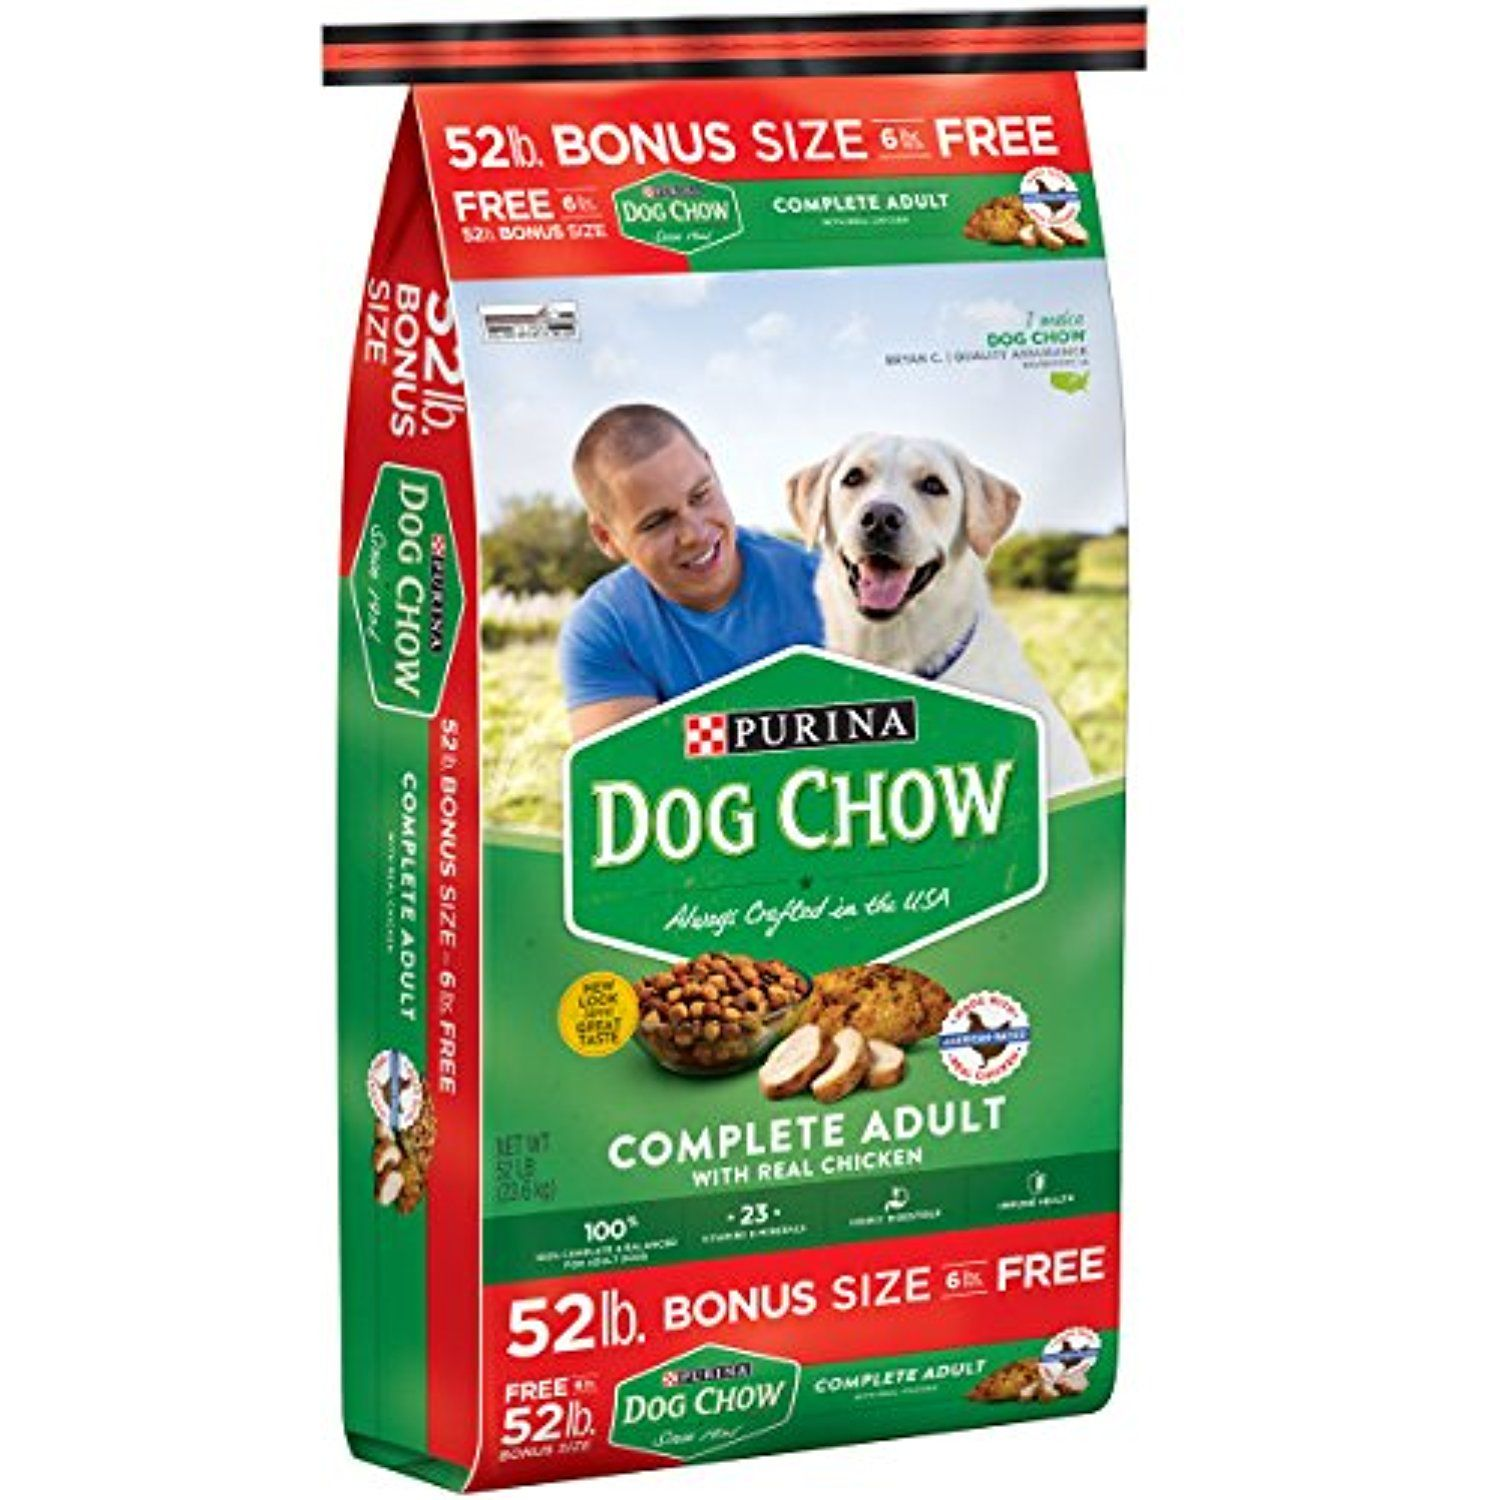 Purina Dog Chow Complete Adult Chicken Flavor 52lbs To Have